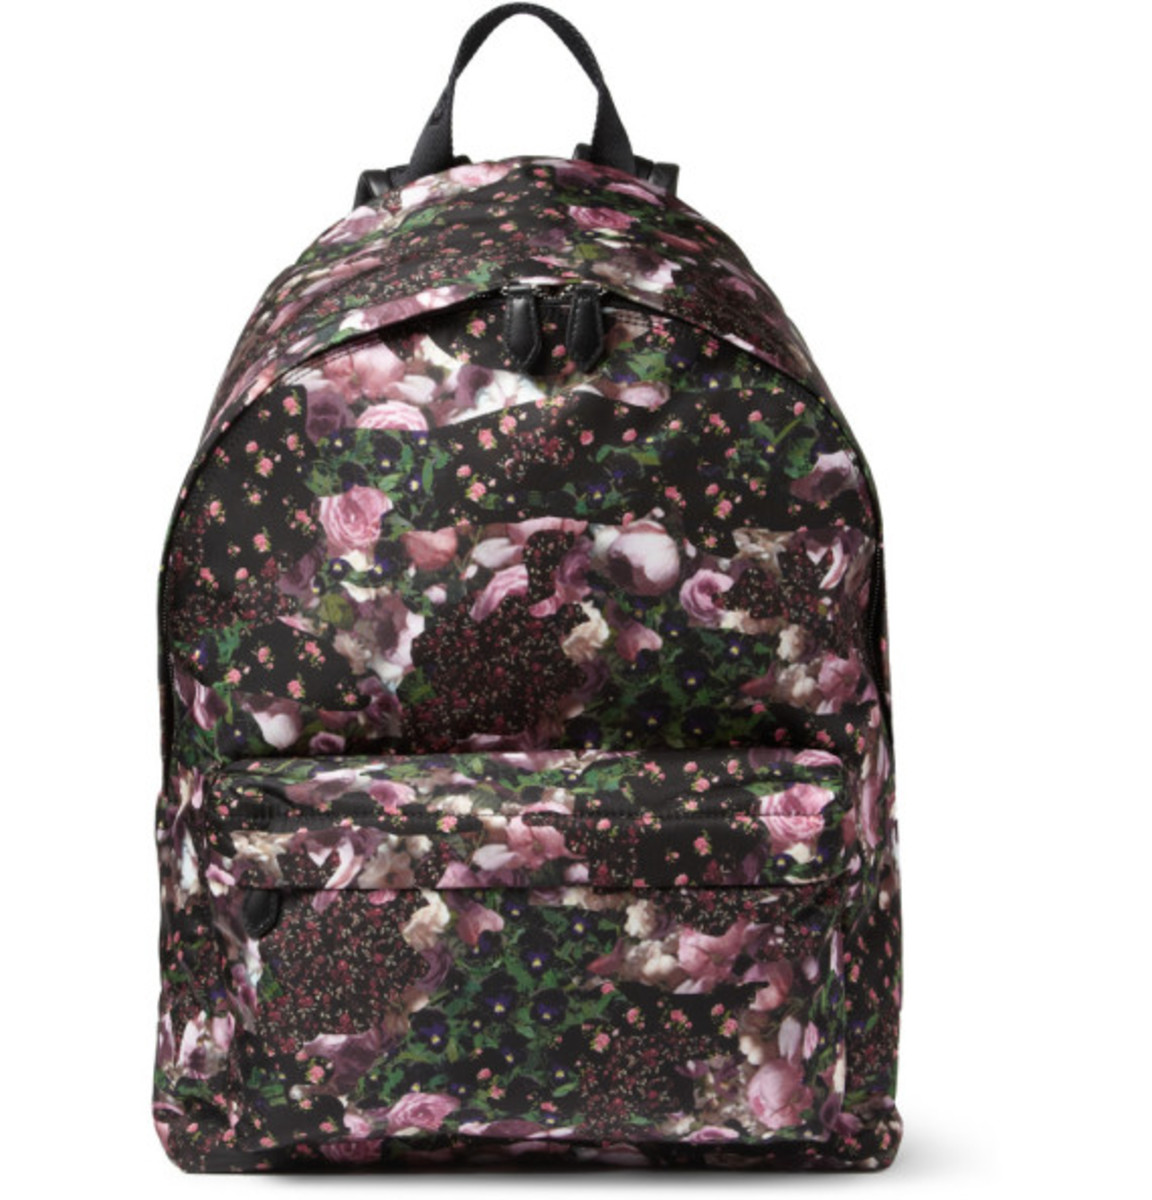 givenchy-floral-print-backpack-02